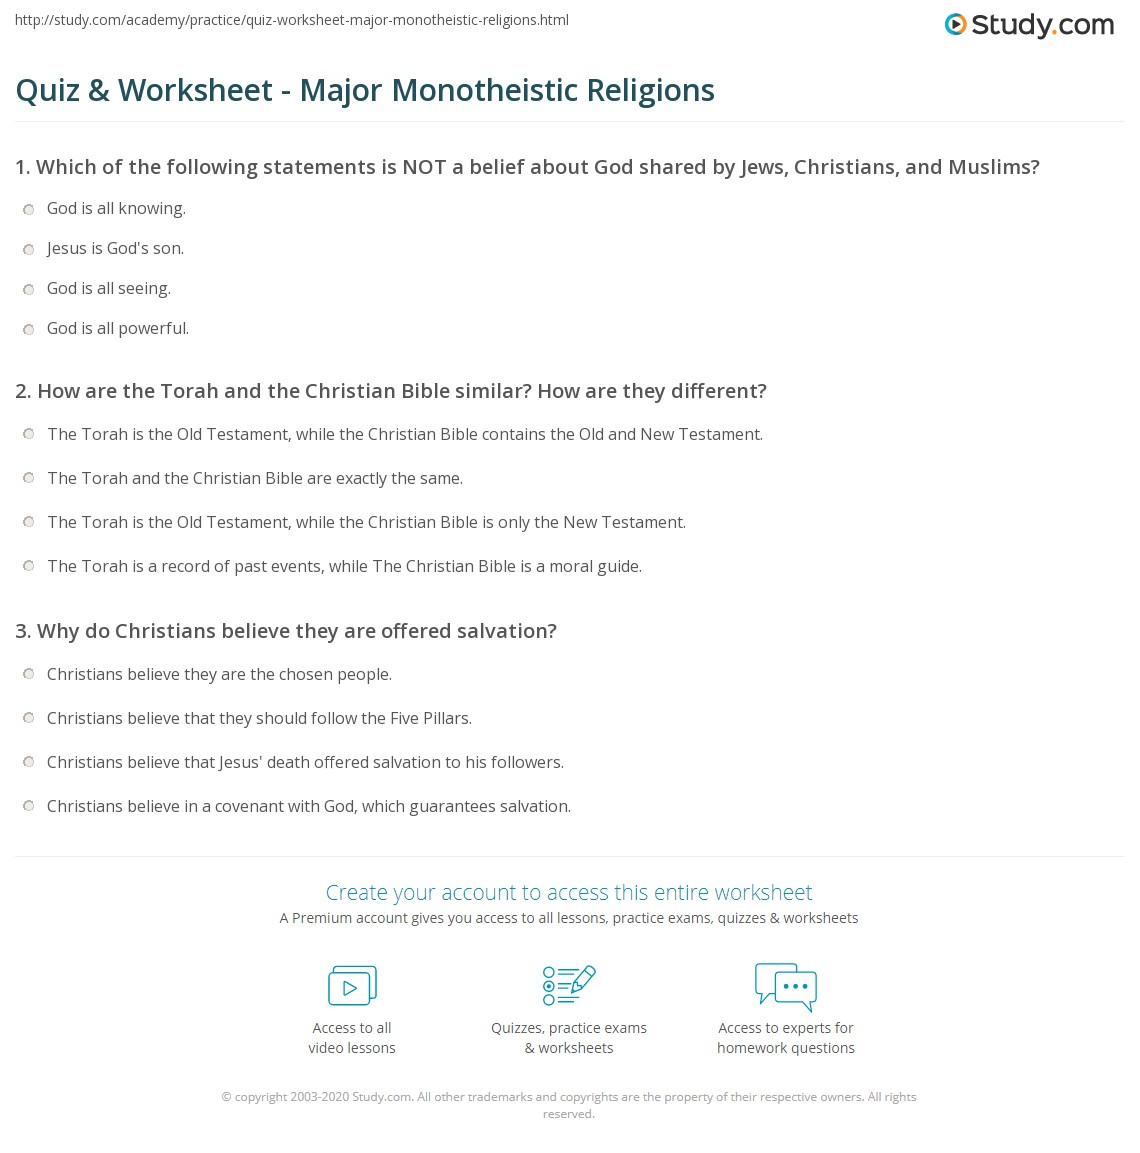 Quiz & Worksheet - Major Monotheistic Religions | Study.com